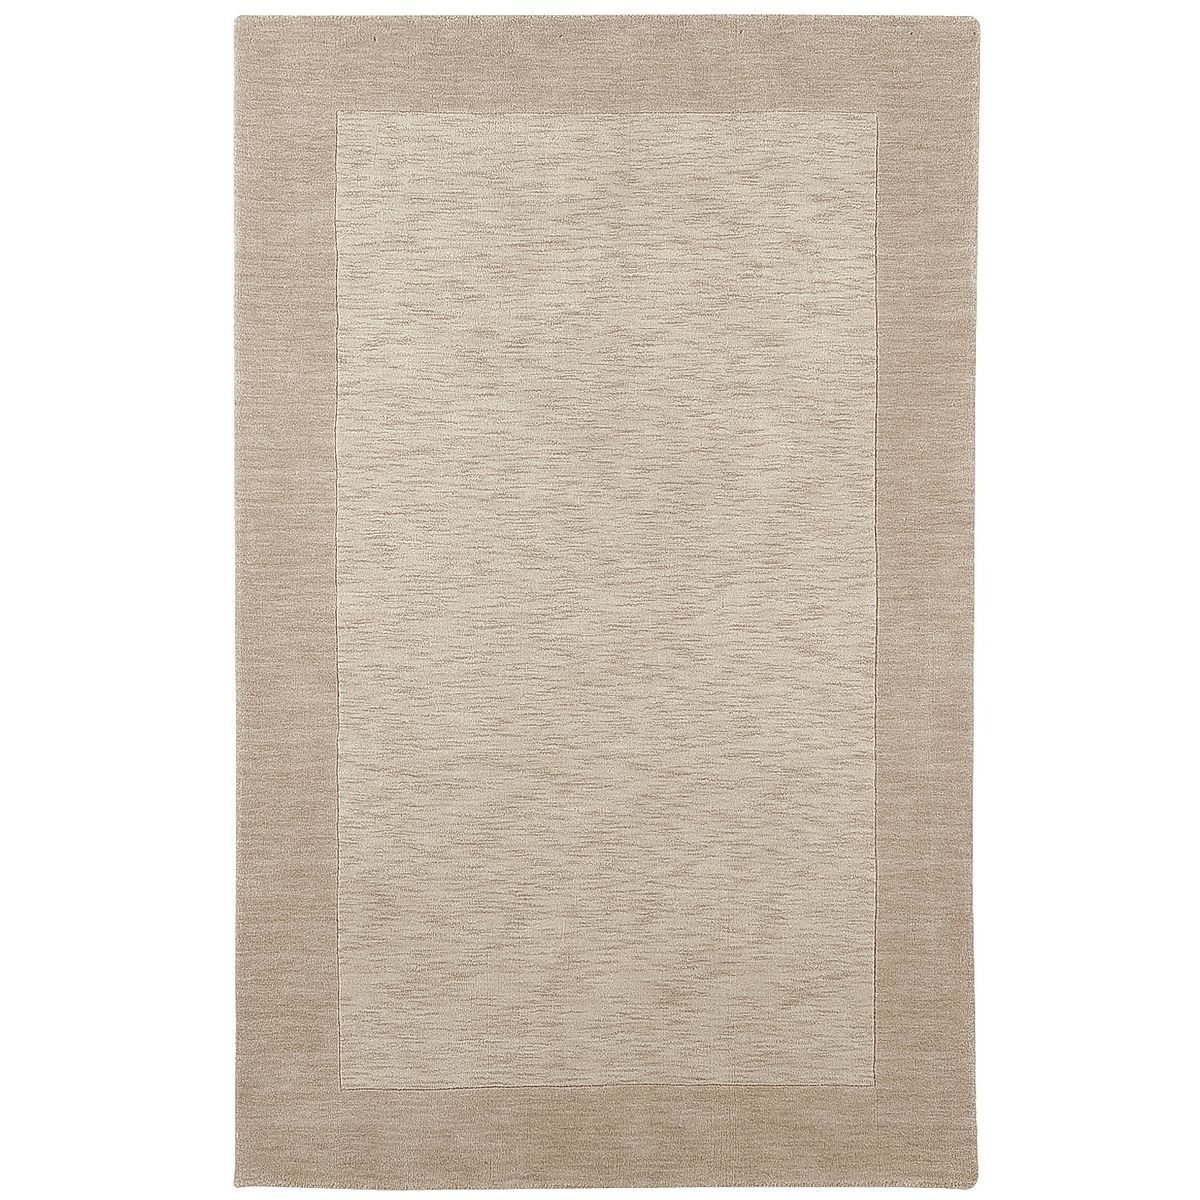 pier 1 living room rugs%0A Heather Border Oyster Rug   Pier   Imports